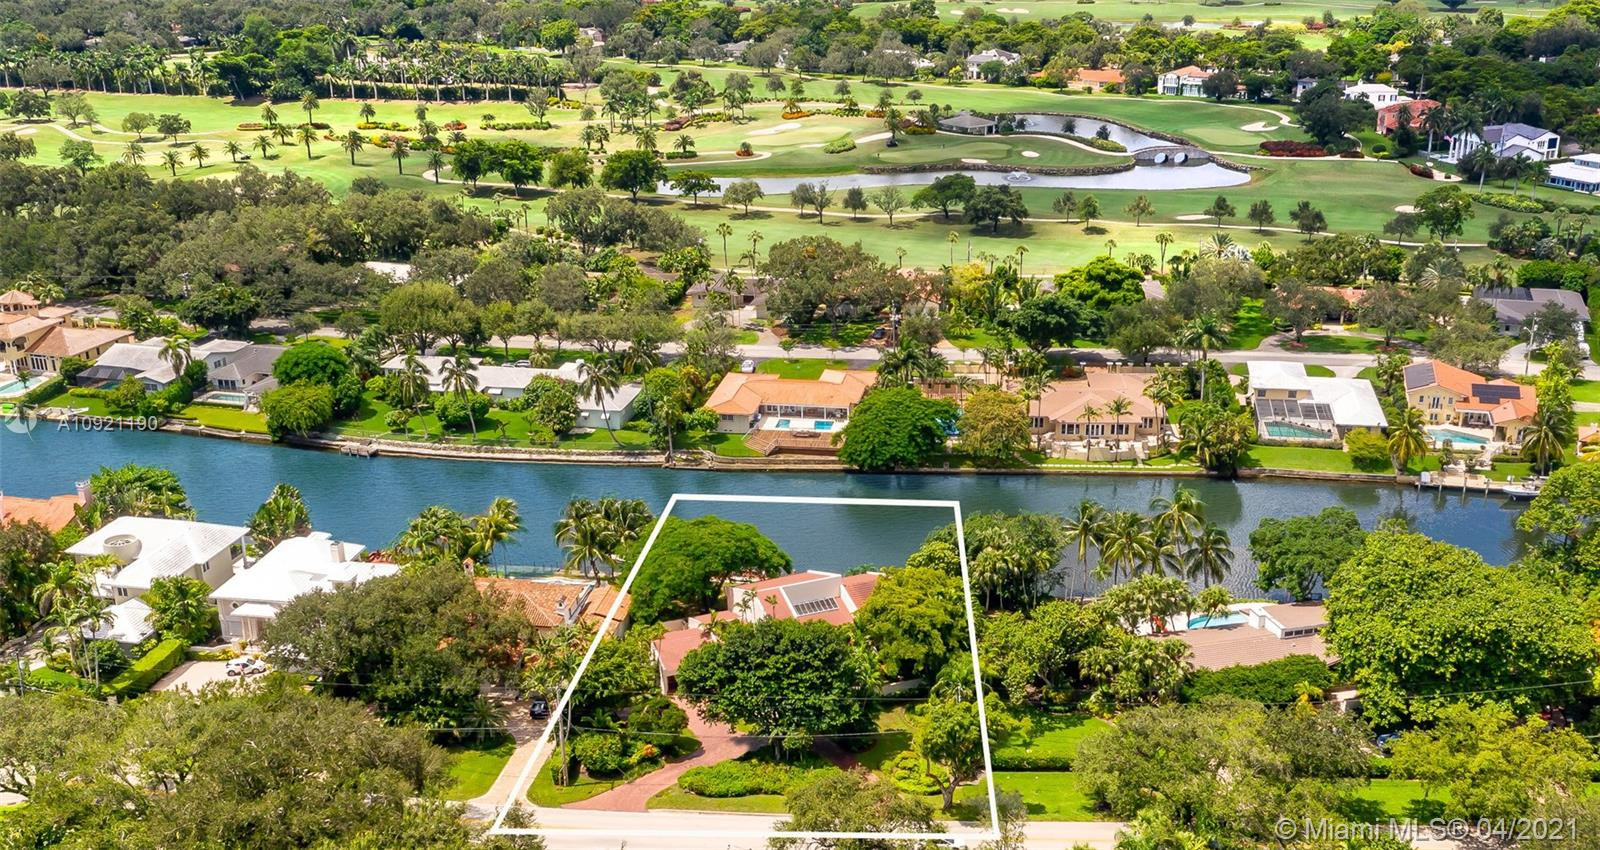 Golden Opportunity to buy a one of a kind WATERFRONT home in the heart of Coral Gables. Few houses enjoy such a privileged position on one of the widest sections of the sought-after Gables Waterway w/direct access to Biscayne Bay. This contemporary home is bursting with potential as it lies on a lush 18,872 SF Lot, including 125' of water frontage with dockage and a custom-built concrete sea wall. Offering over 5,000+SF, this home features a sun-soaked interior central patio, large family room with billiard table ideal for entertaining, spacious kitchen with abundant storage, formal living/dining rooms, large office, service/in-law quarters, expansive master suite, and spacious backyard with huge potential. This property offers unlimited opportunities to be your dream waterfront home.